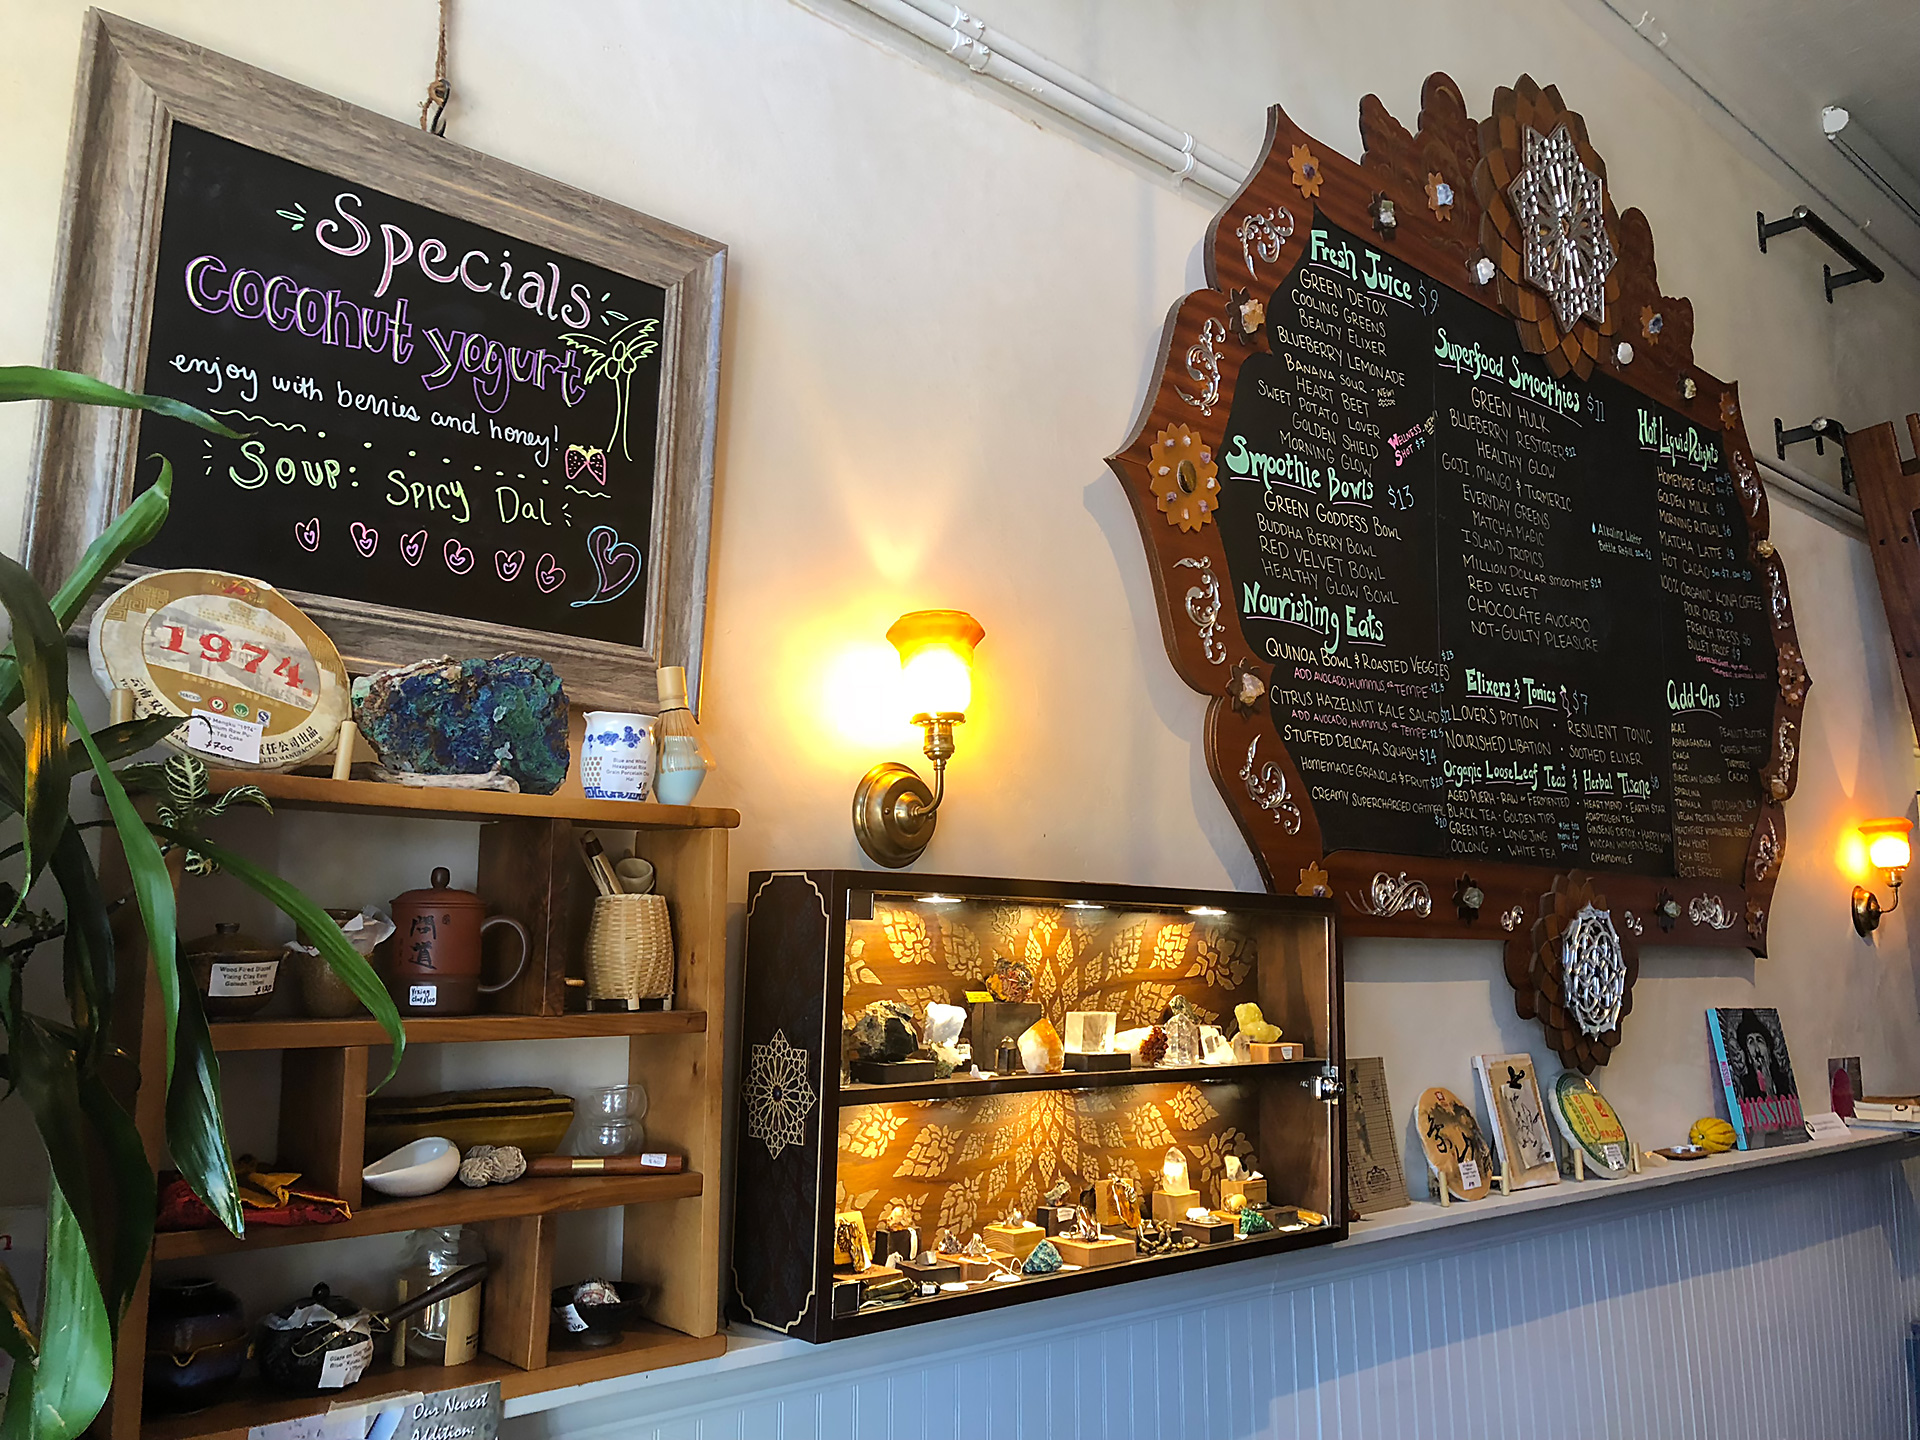 The menu displayed as art at the Beloved Café.